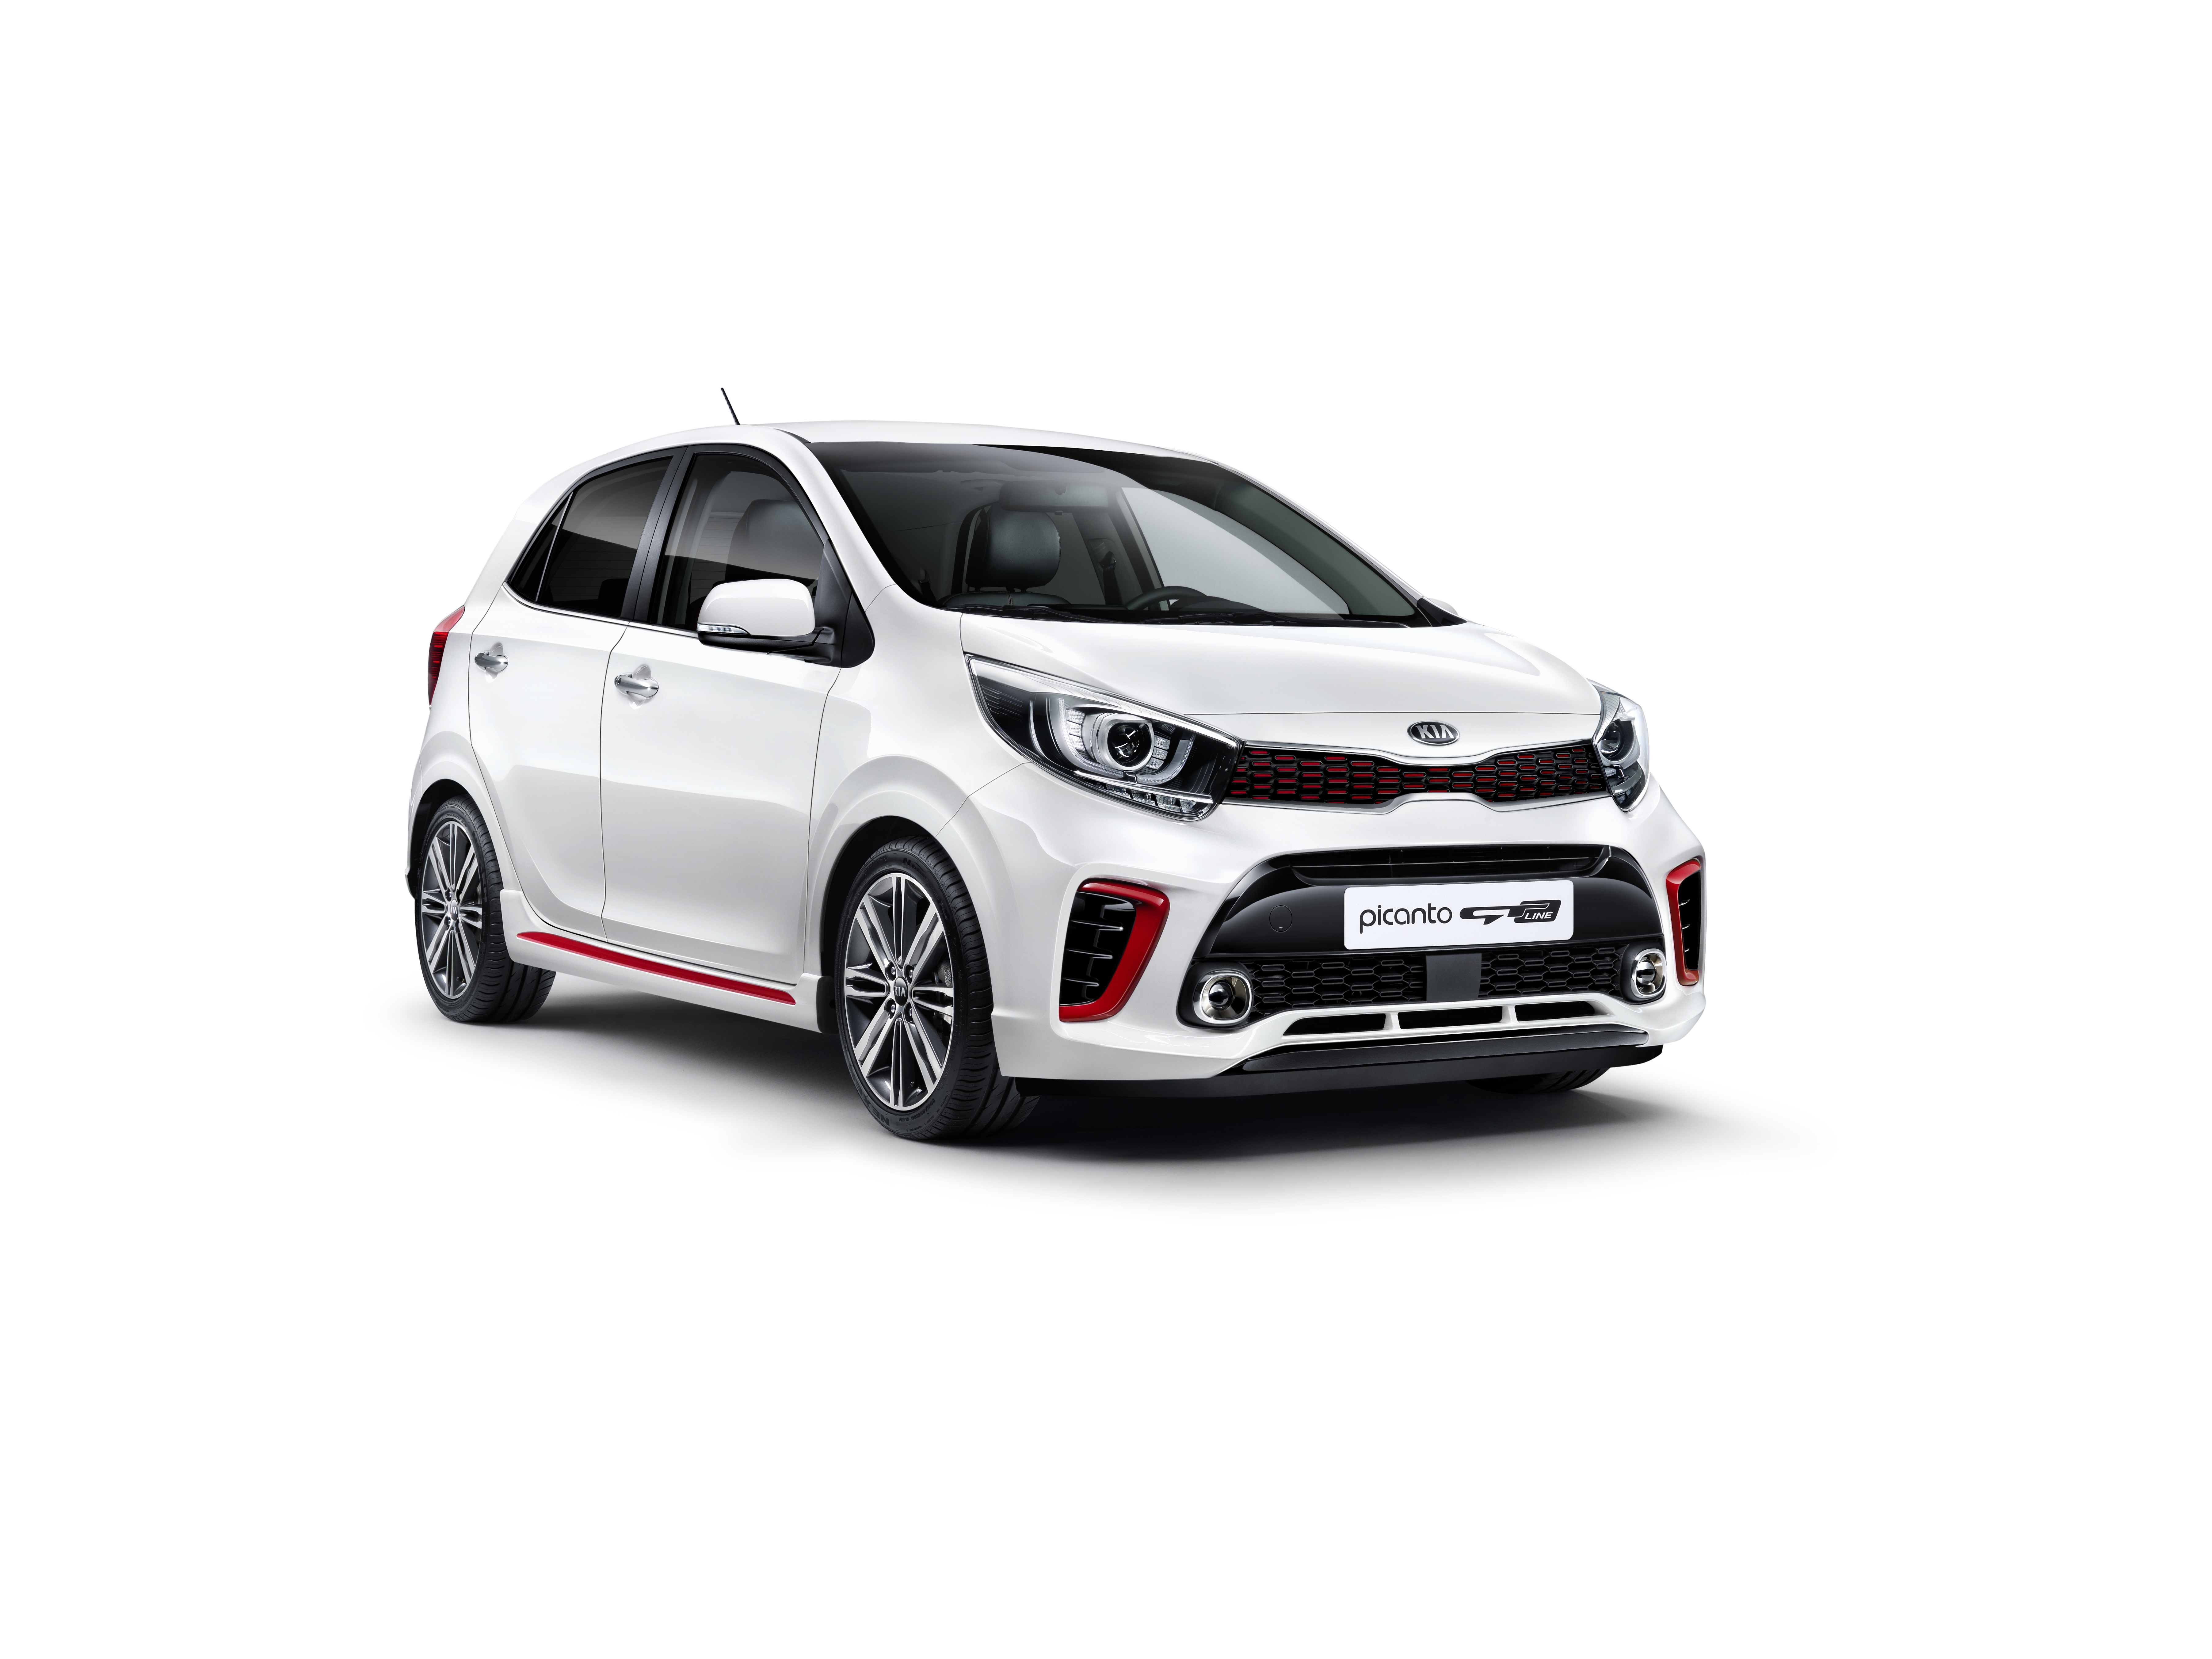 Kia releases first images of all new Picanto